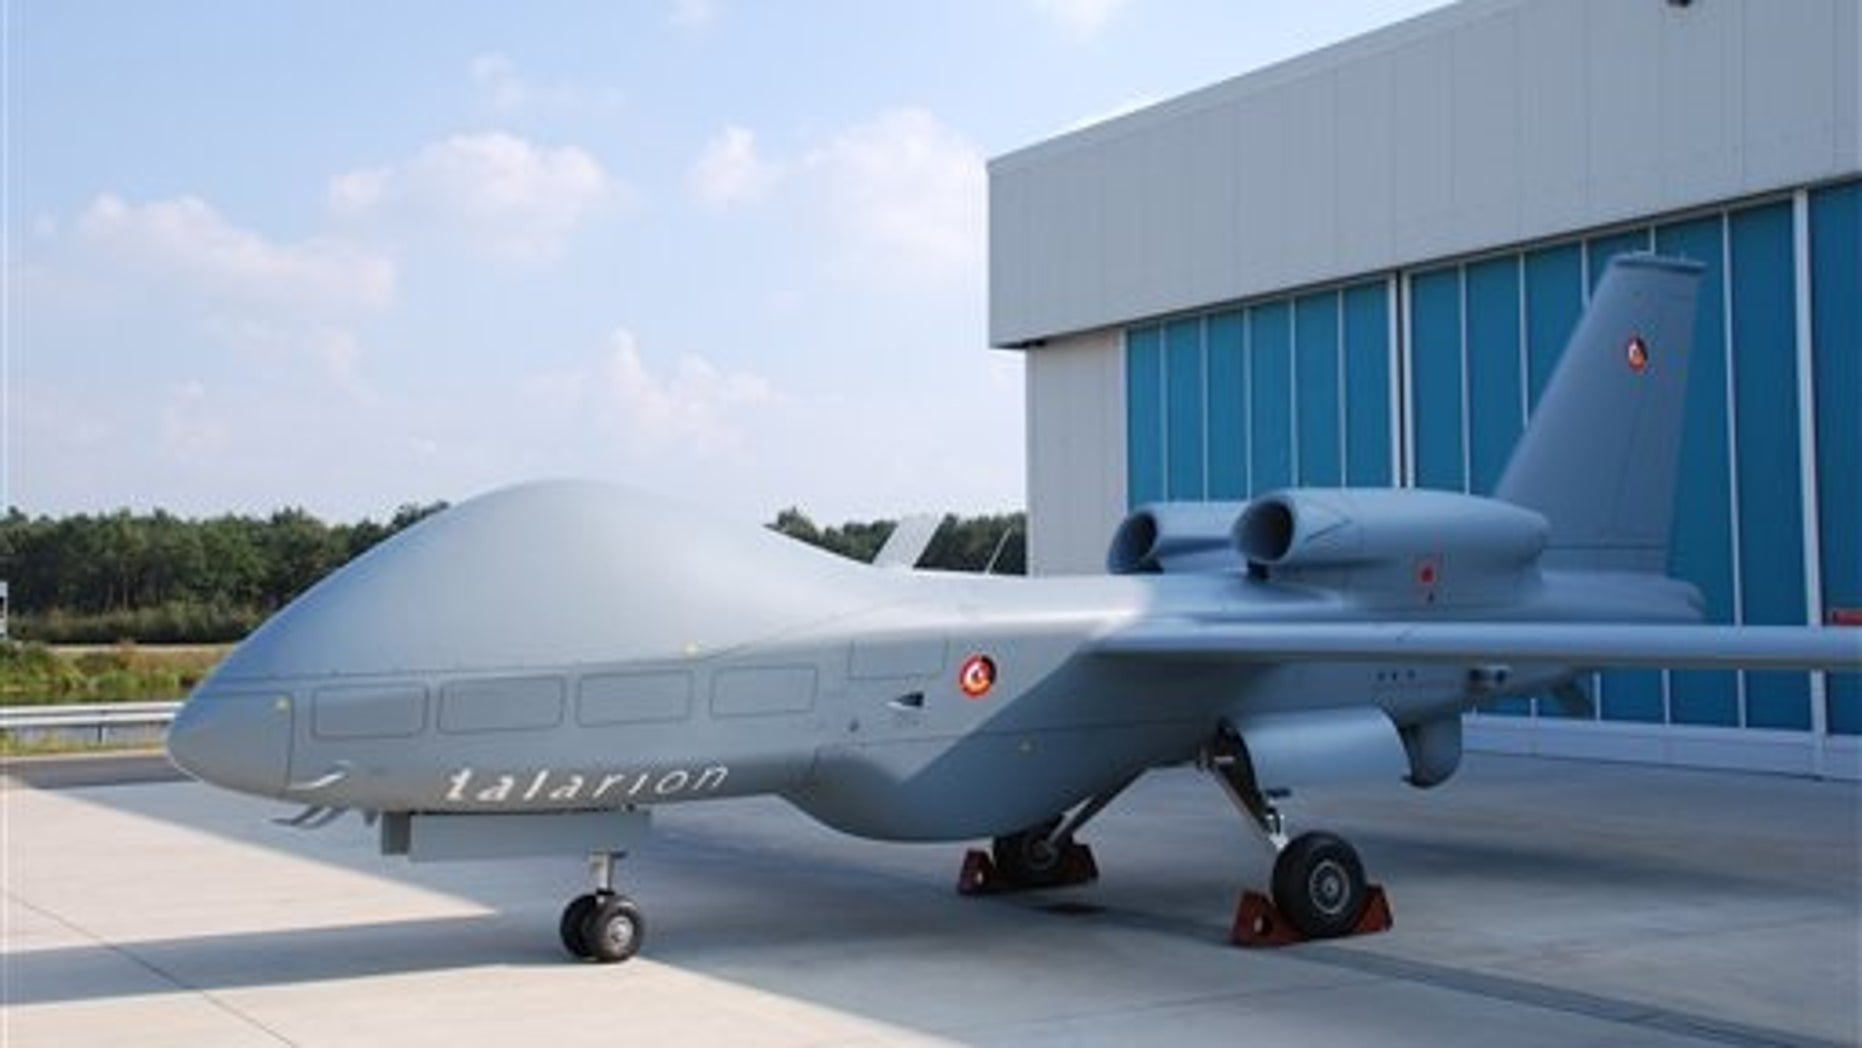 HANDOUT - An undated picture made available by eads on 18 May 2015 shows a Talarion drone manufactured by armaments manufacturer eads in front of a hangar. Photo by: picture-alliance/dpa/AP Images